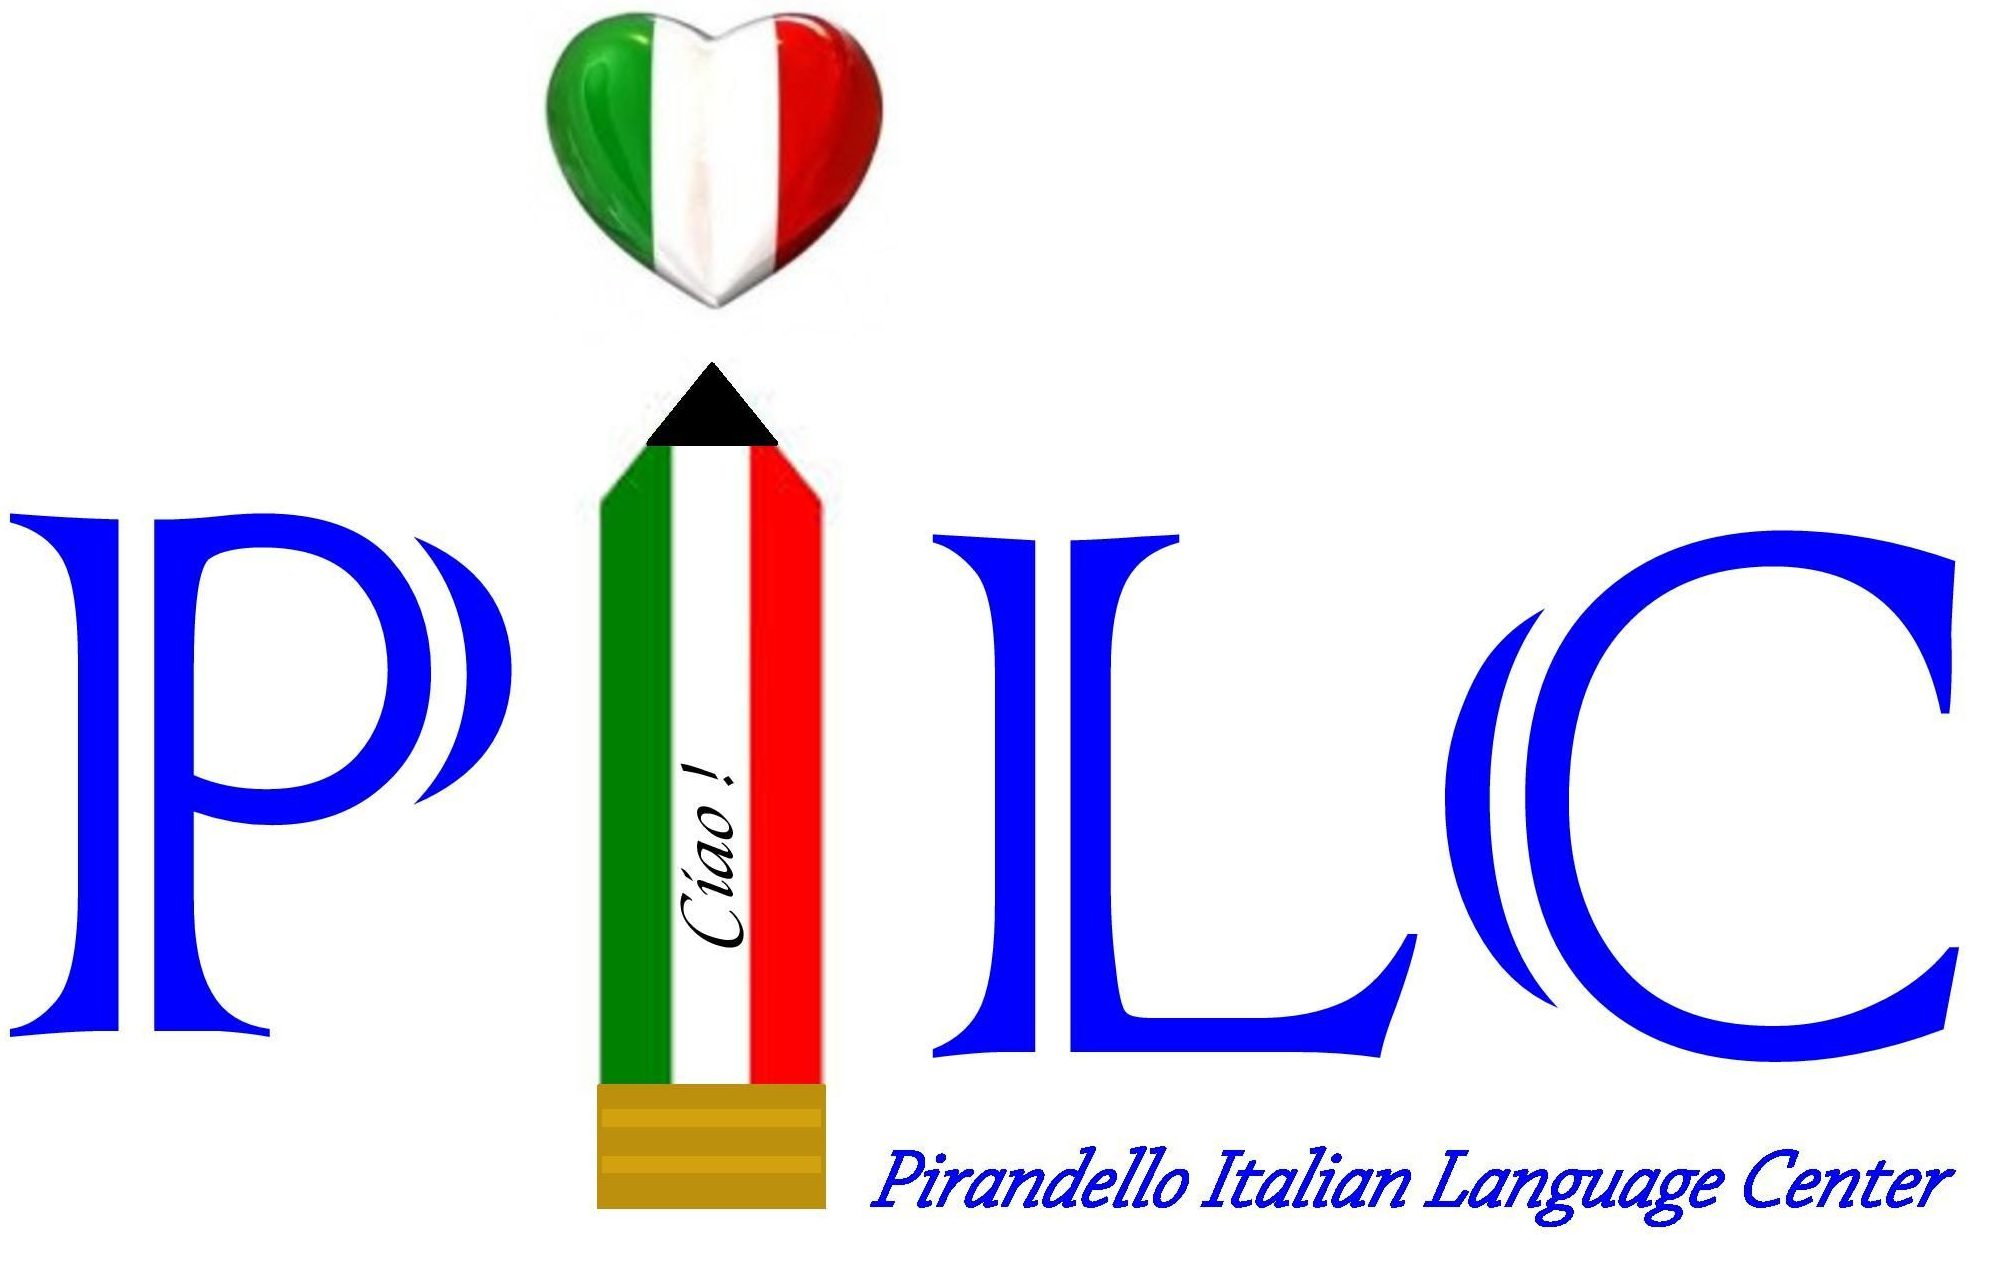 Pirandello Italian Language Center Logo